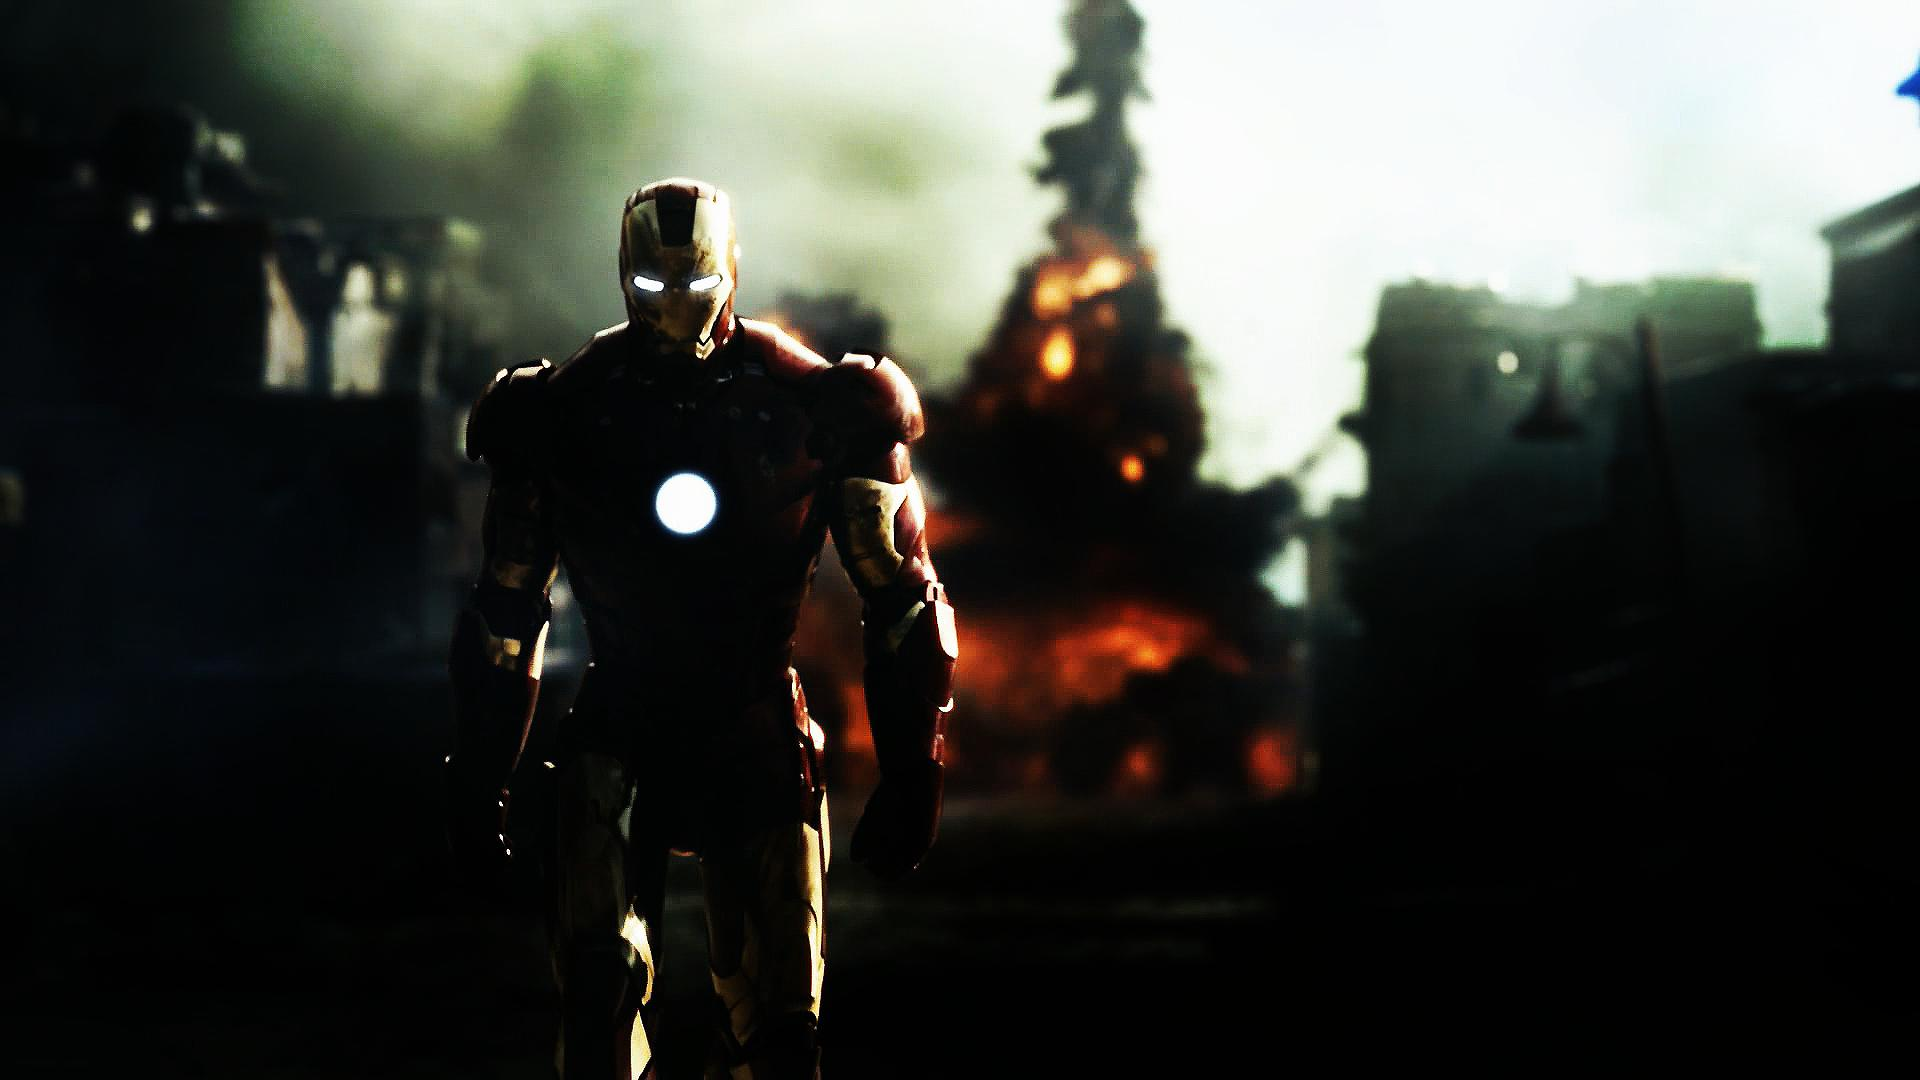 Iron Man 1 Wallpapers Top Free Iron Man 1 Backgrounds Wallpaperaccess